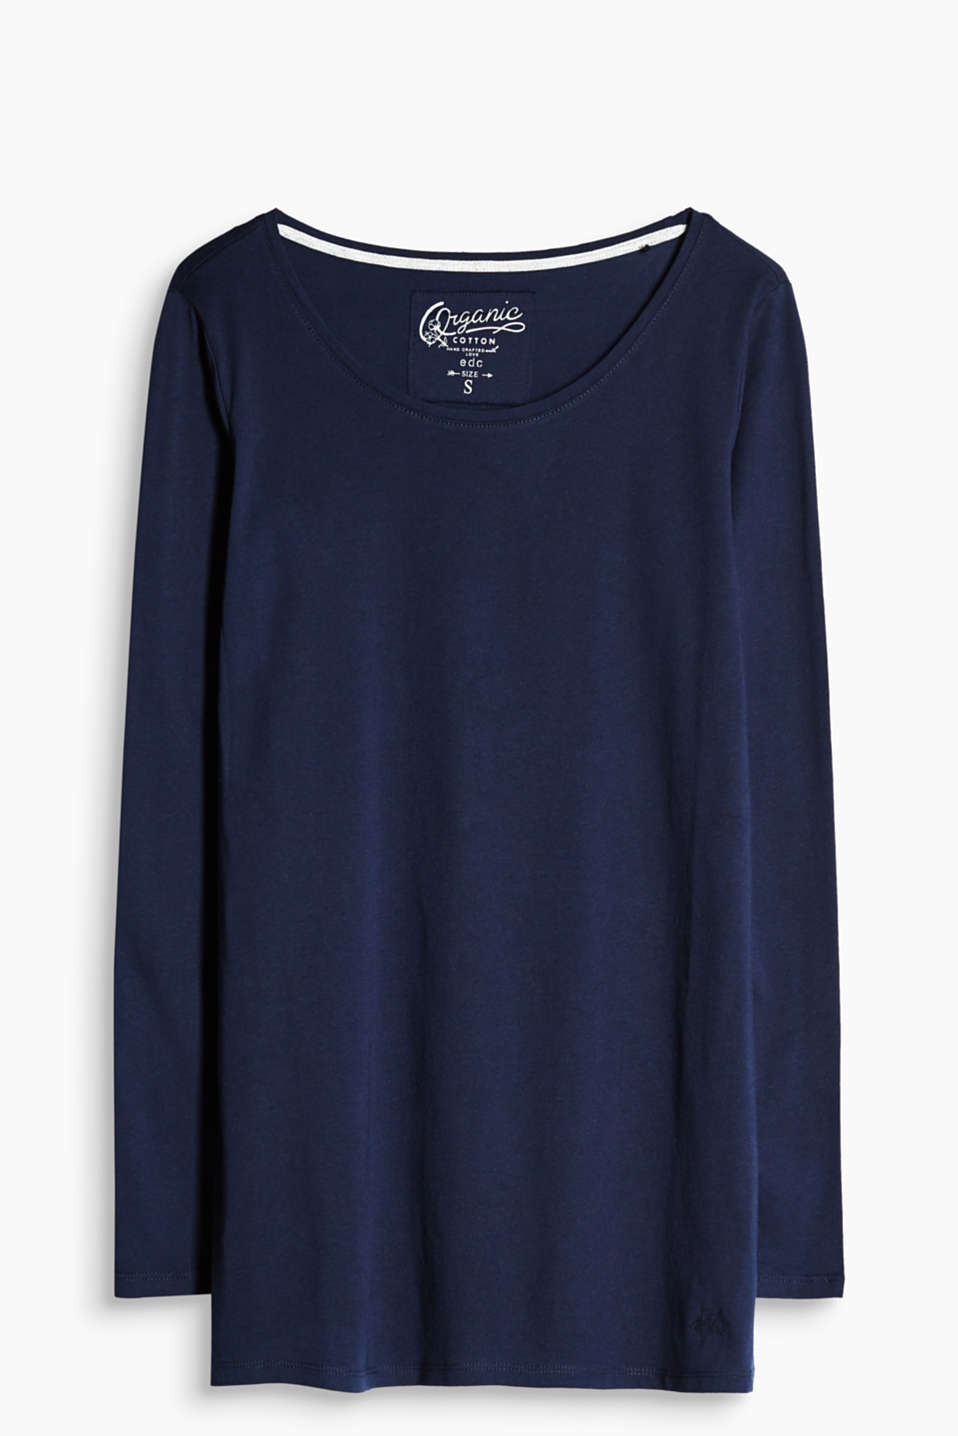 Made of pure organic cotton: longer, fitted long sleeve top with a round neckline.